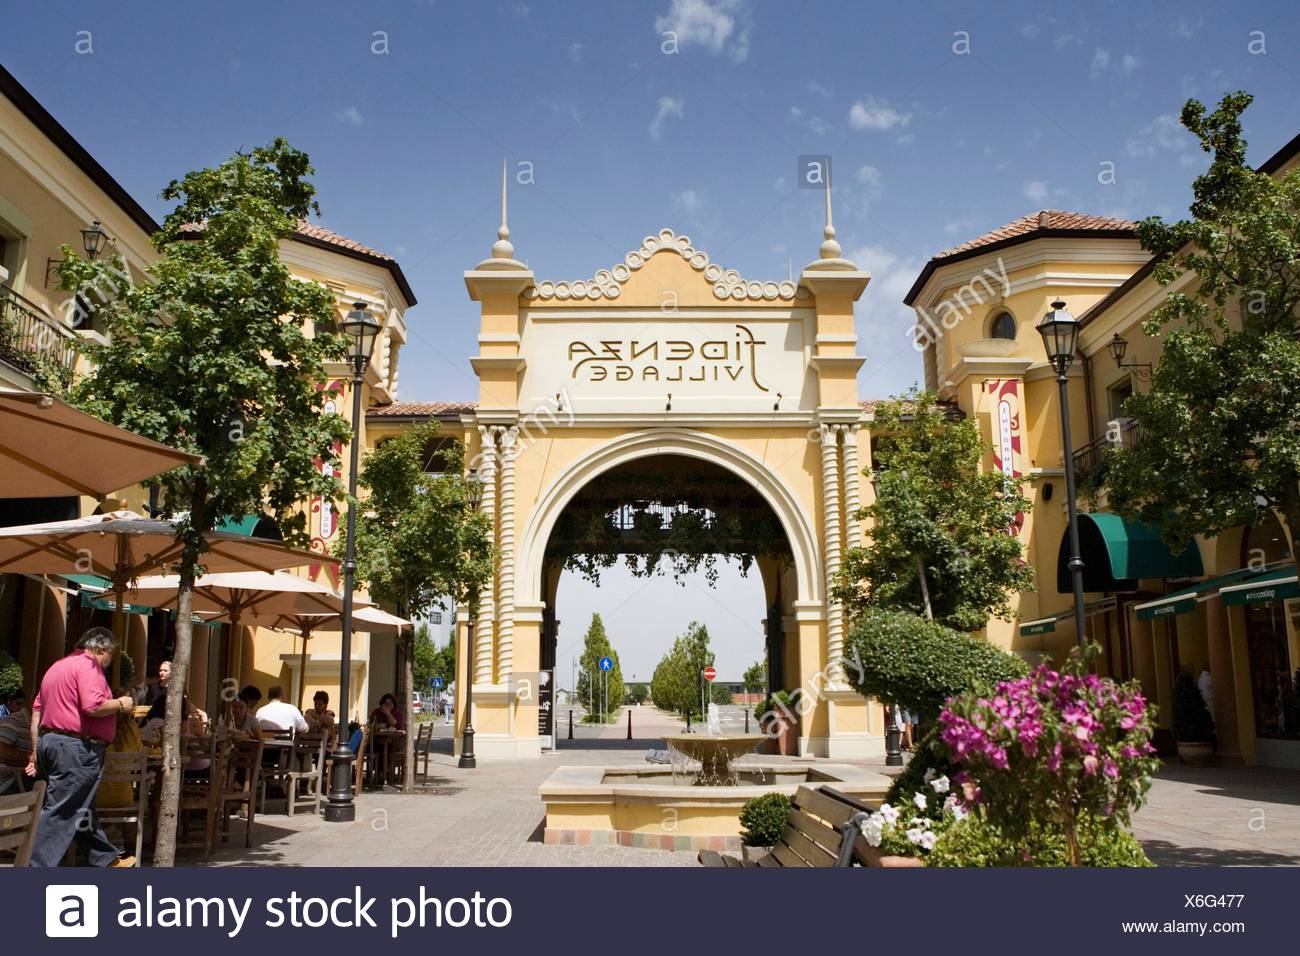 Italy The Mall Outlet Stock Photos & Italy The Mall Outlet Stock ...